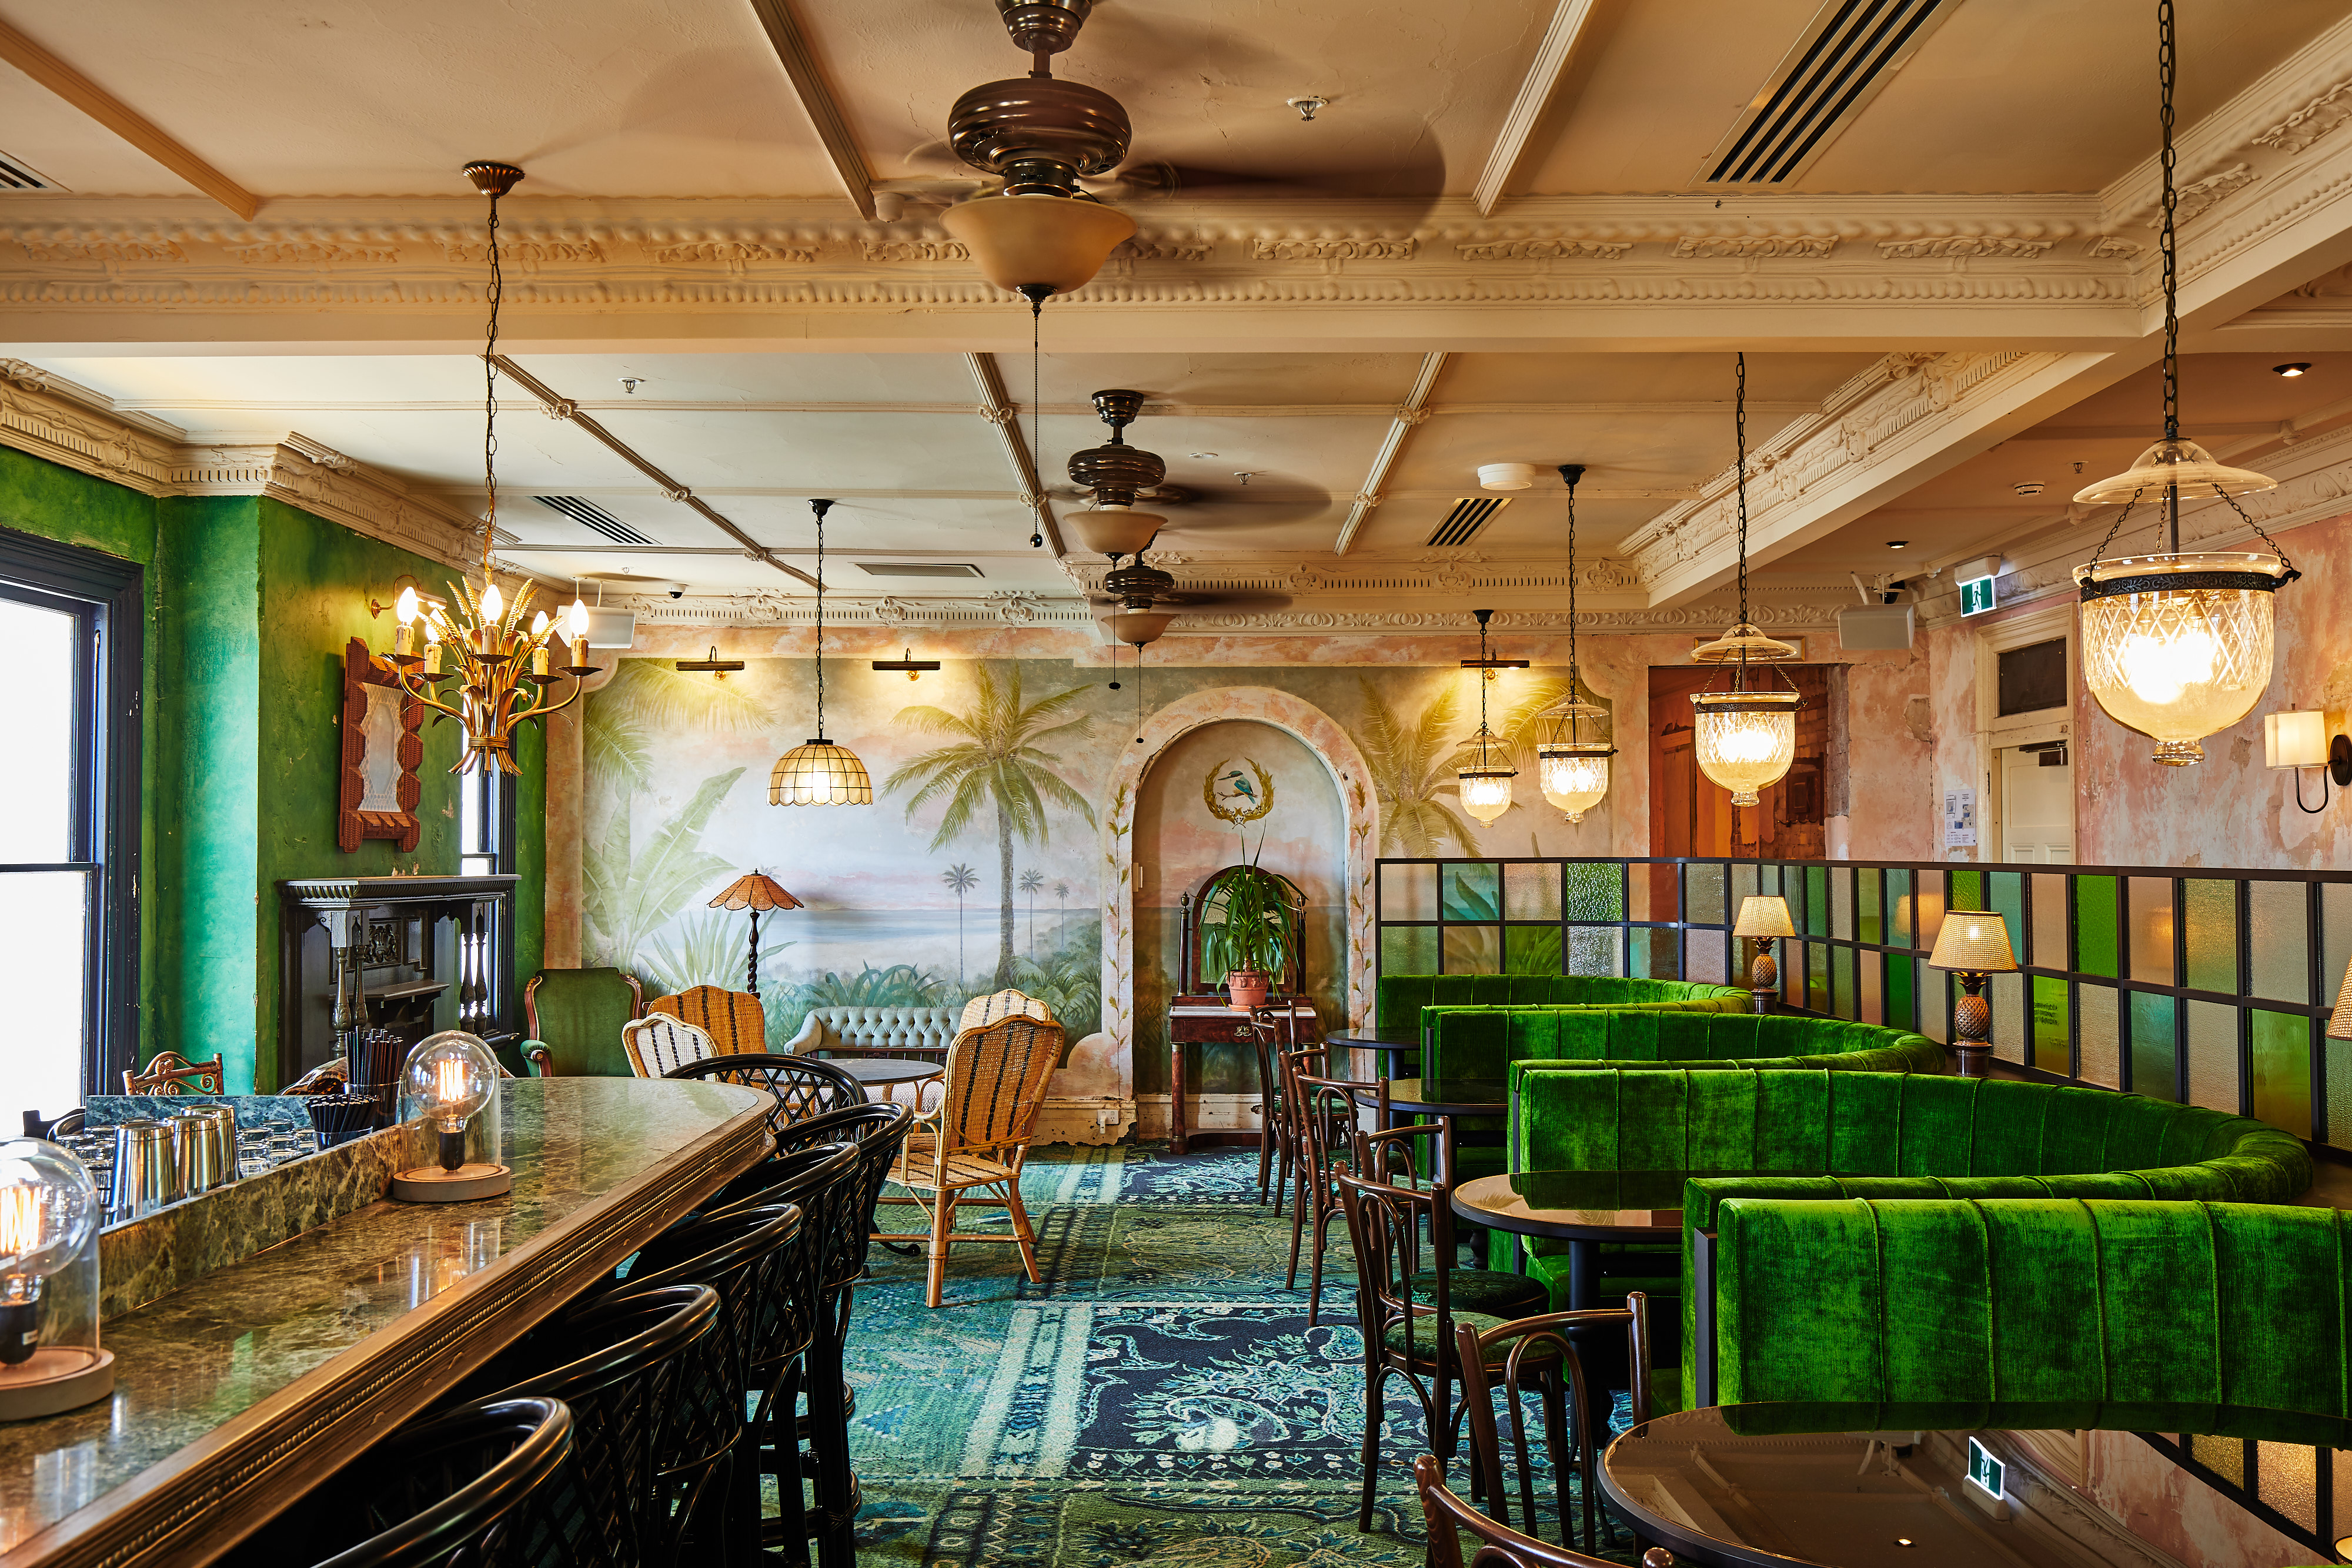 Green velvet banquettes and a vintage bar at the Espy